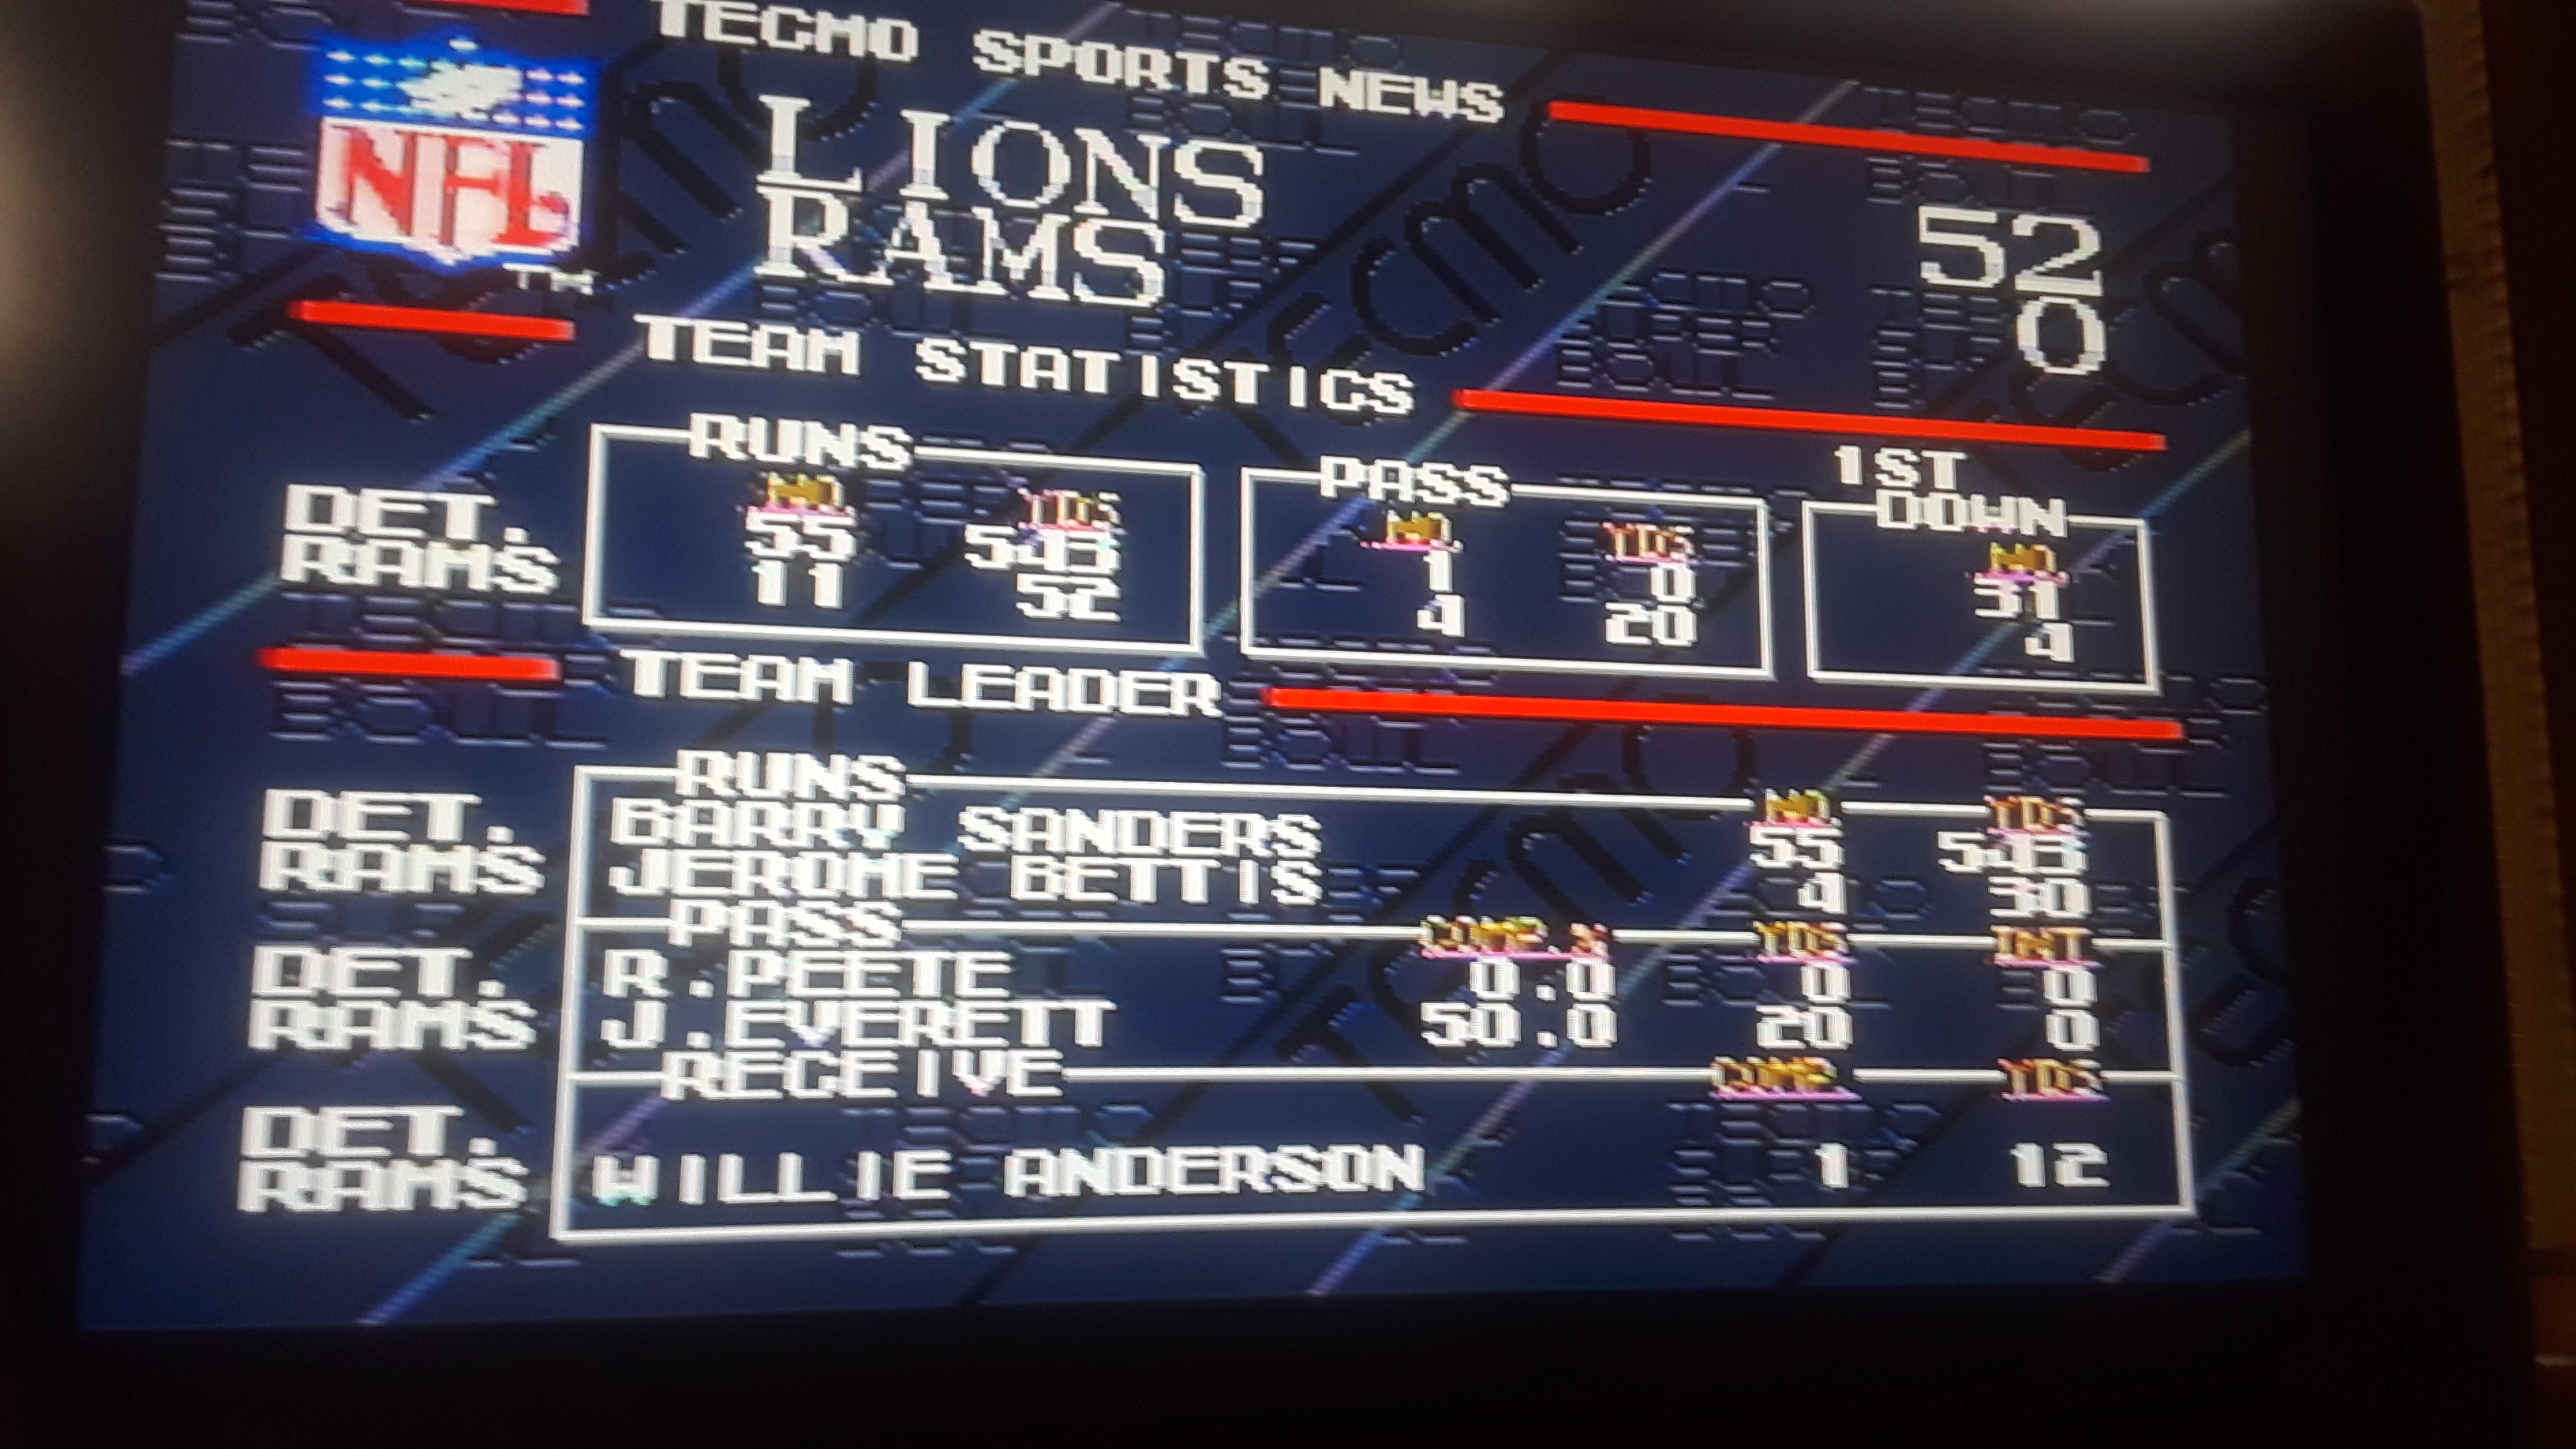 JML101582: Tecmo Super Bowl [Most Rushing Attempts In A Preseason Game] (Sega Genesis / MegaDrive Emulated) 55 points on 2019-09-05 19:21:46